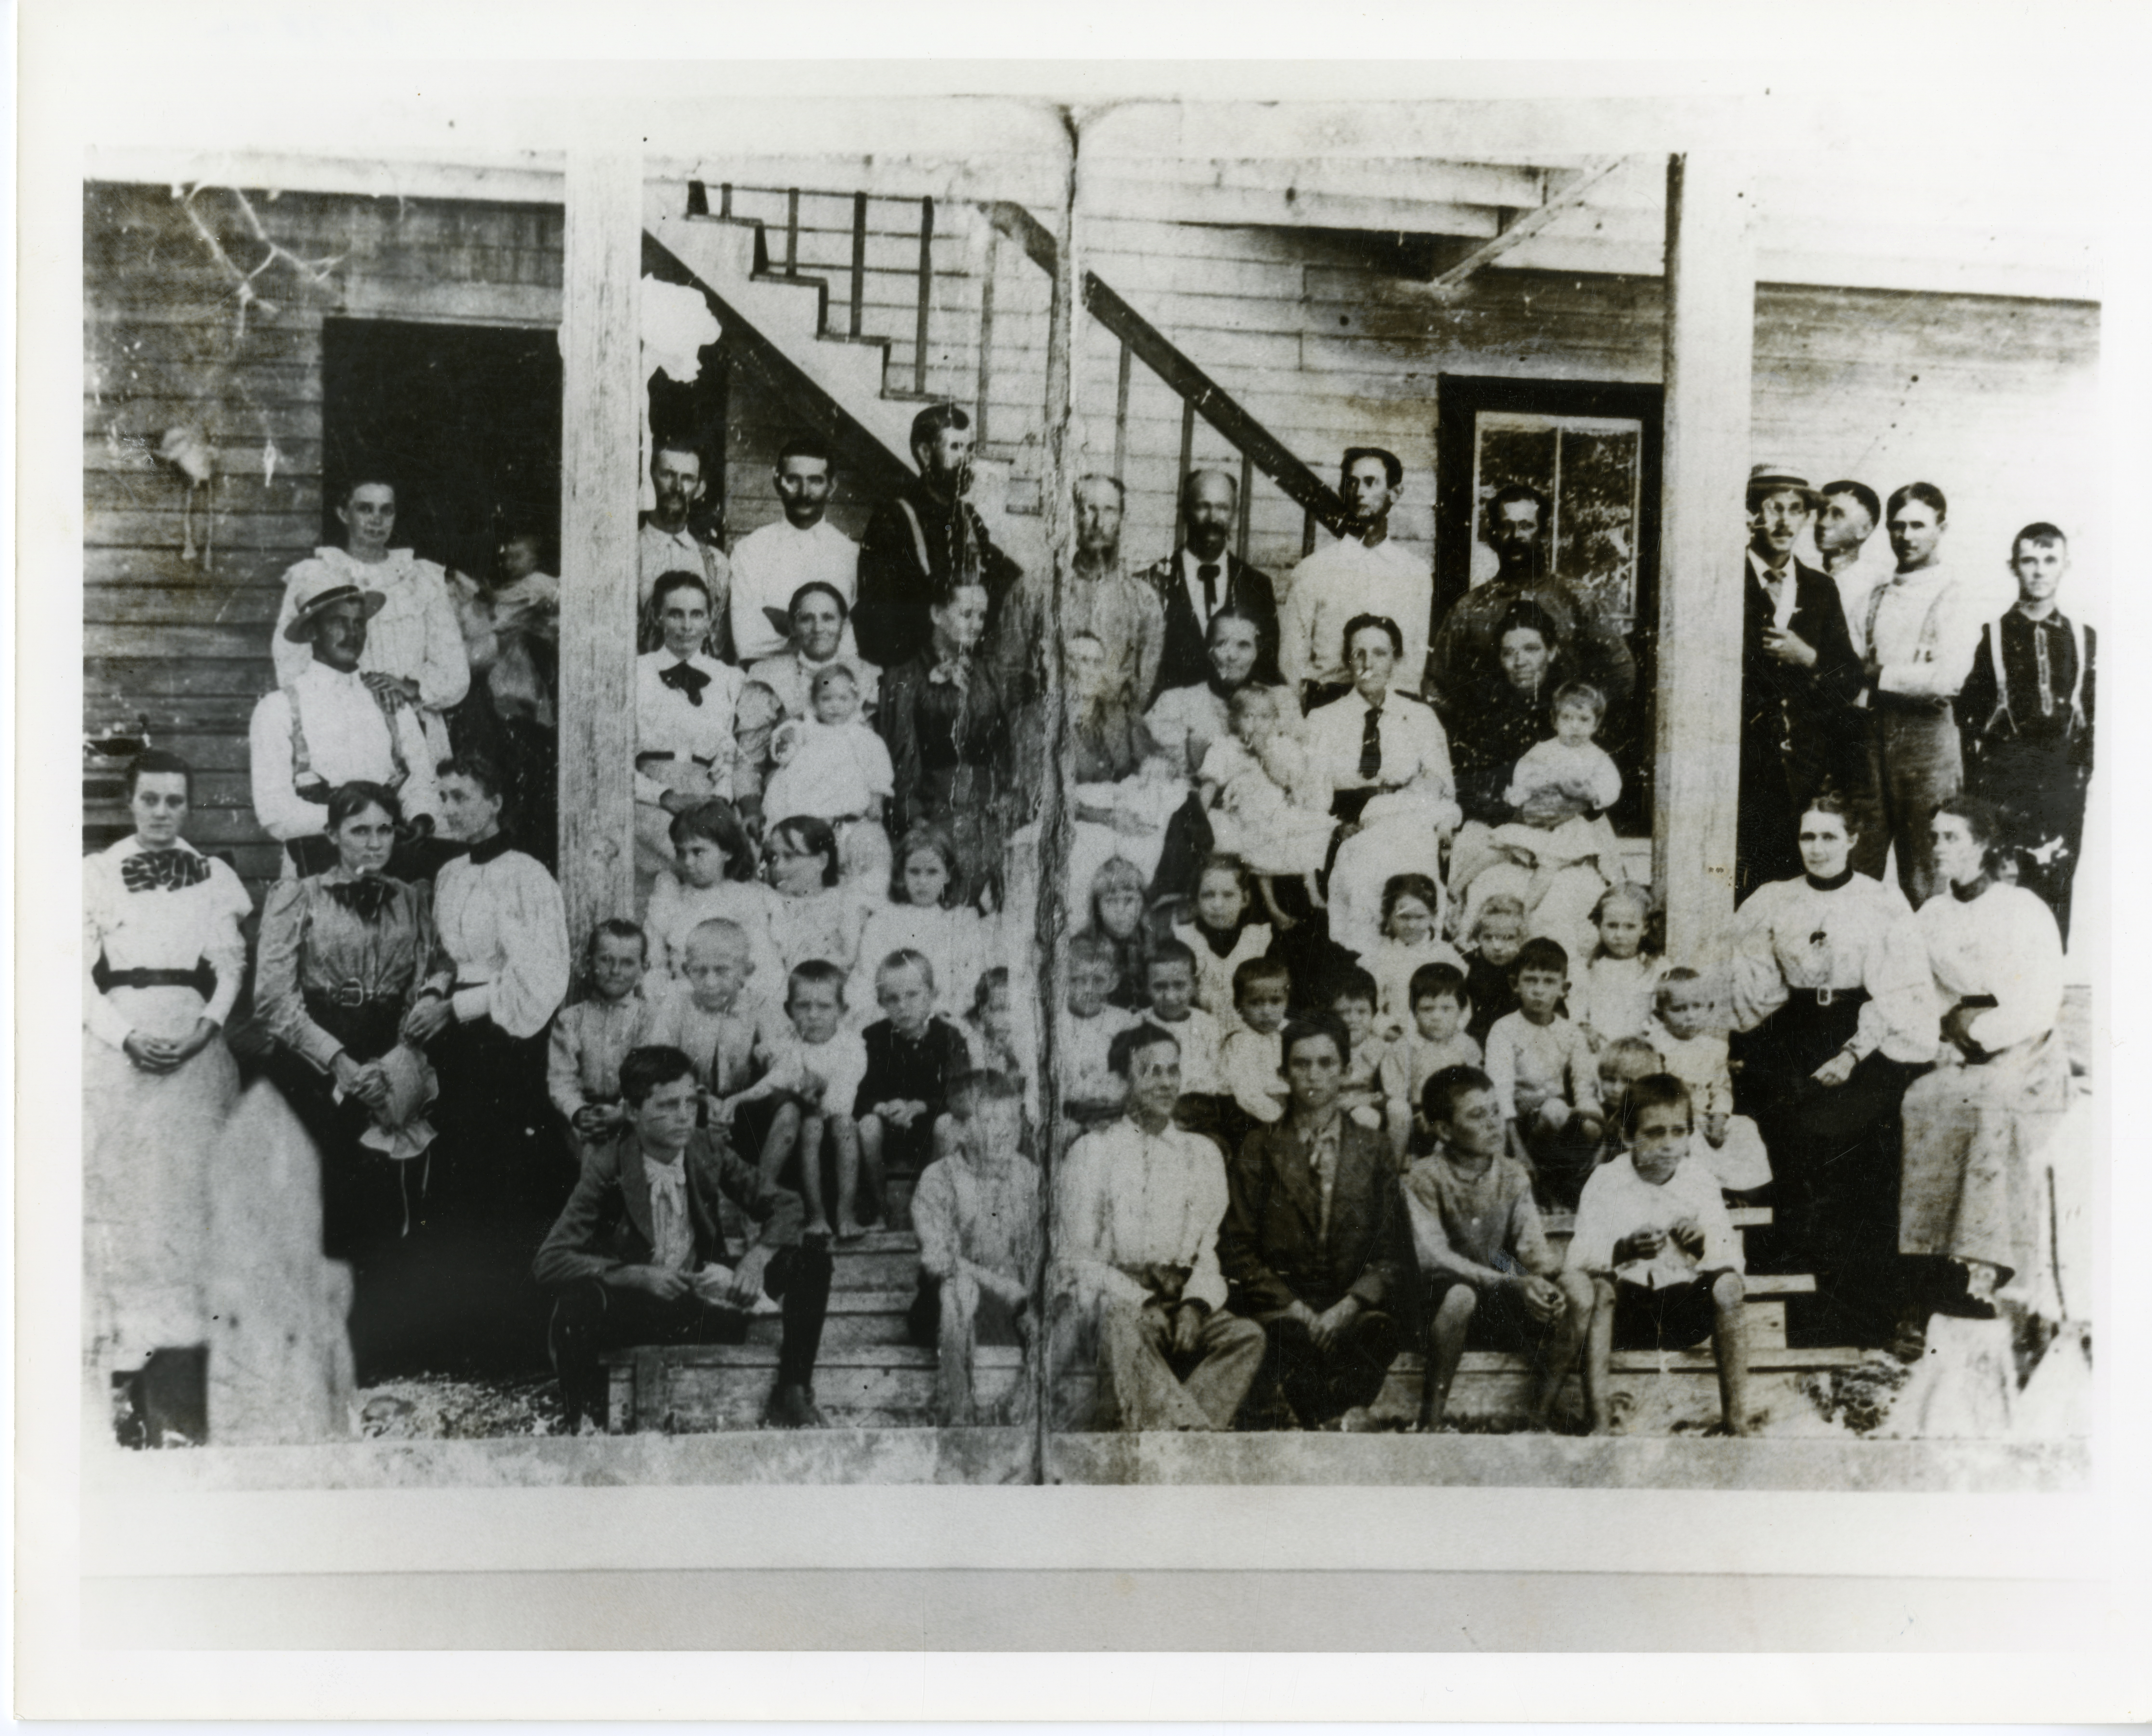 James P. McMullen Family Reunion, Bayview Hotel, Clearwater, Florida, circa 1895.